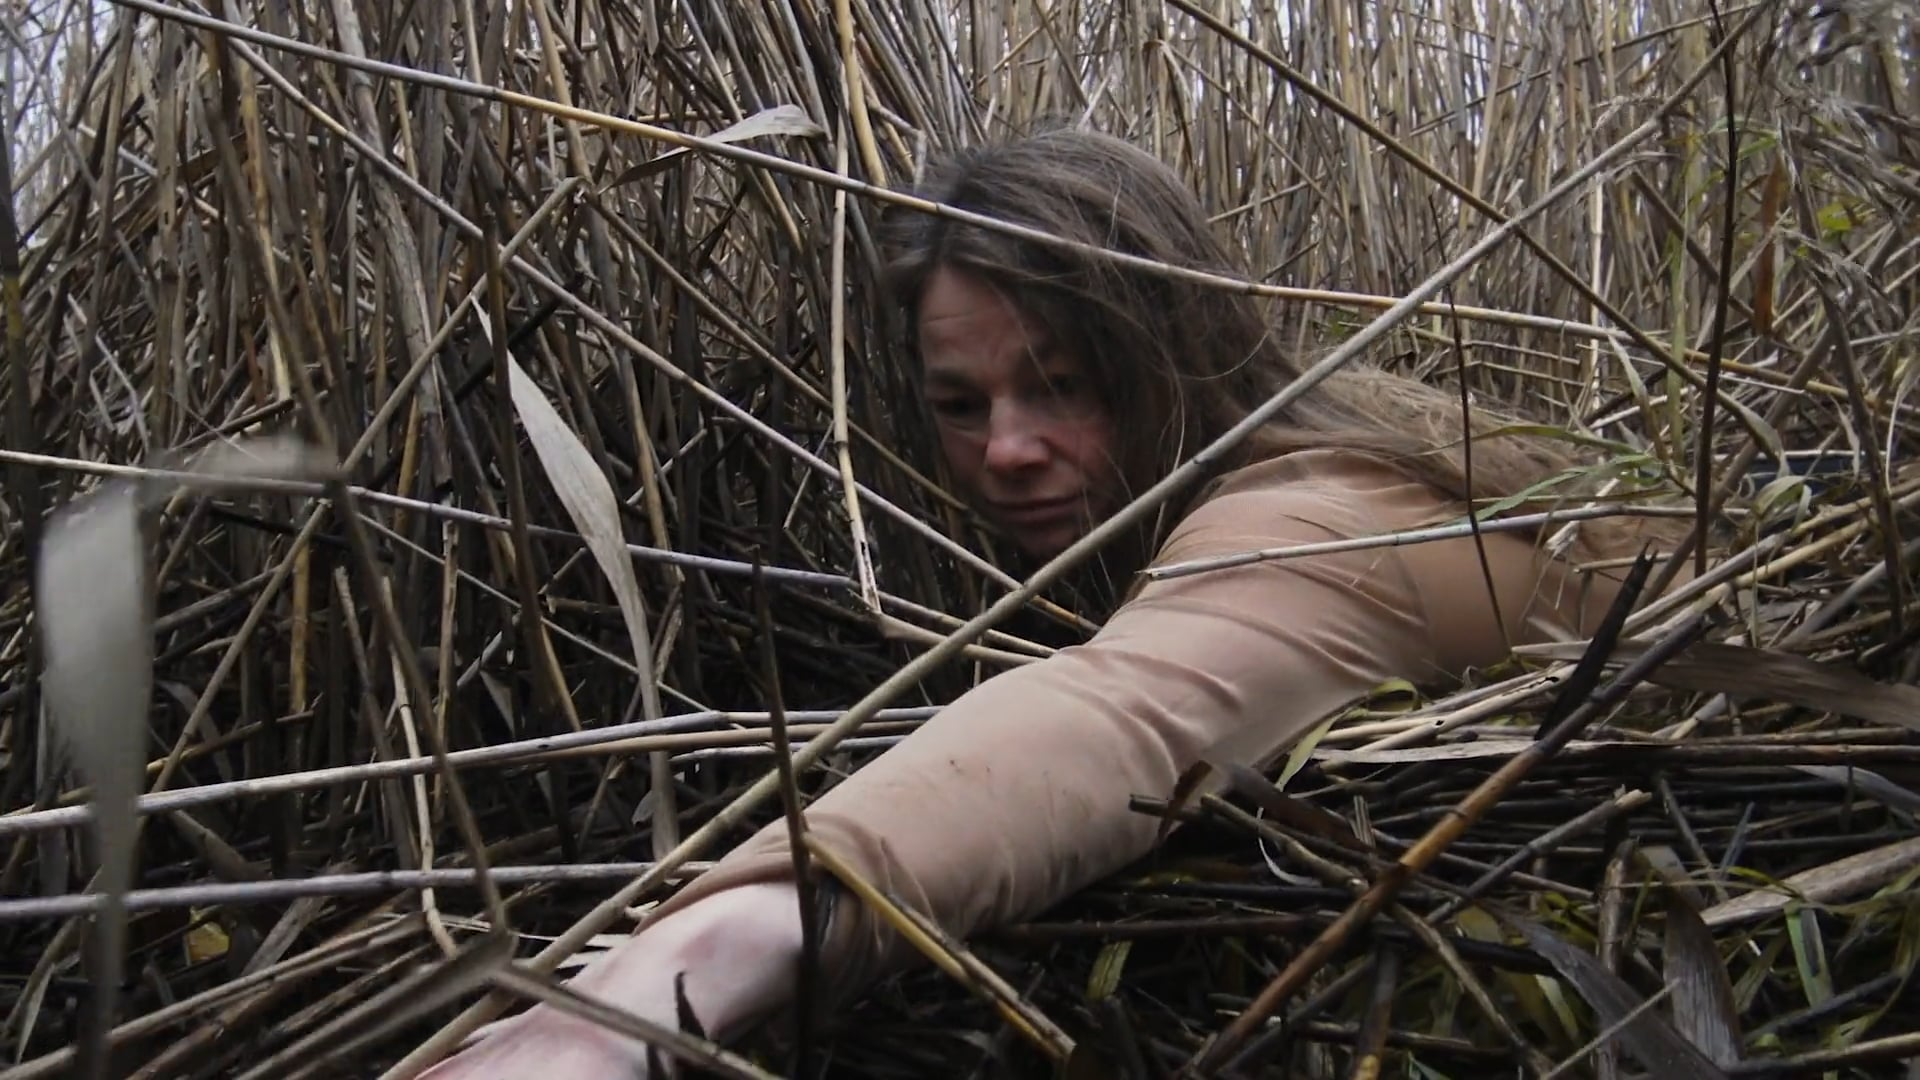 TOUCHED BY NATURE Episode 4 Reeds